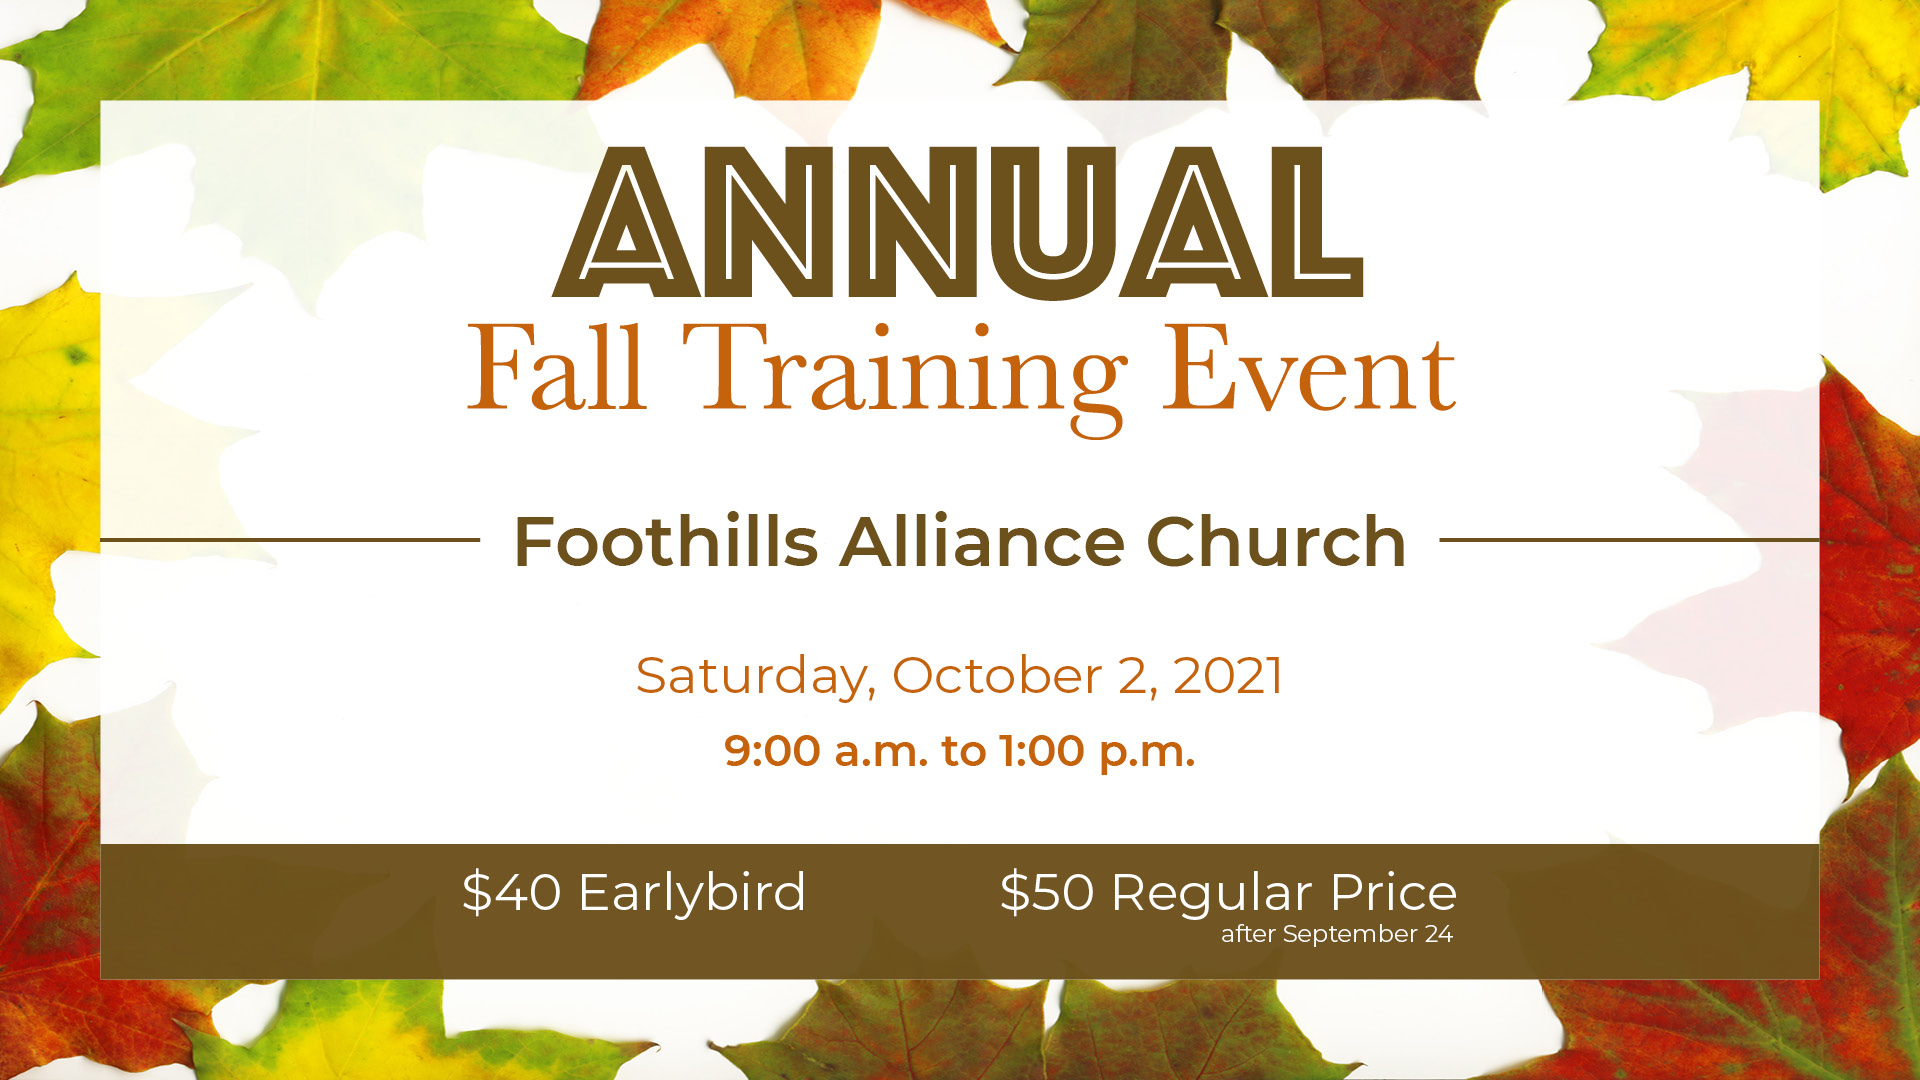 Annual Fall Training Event Poster